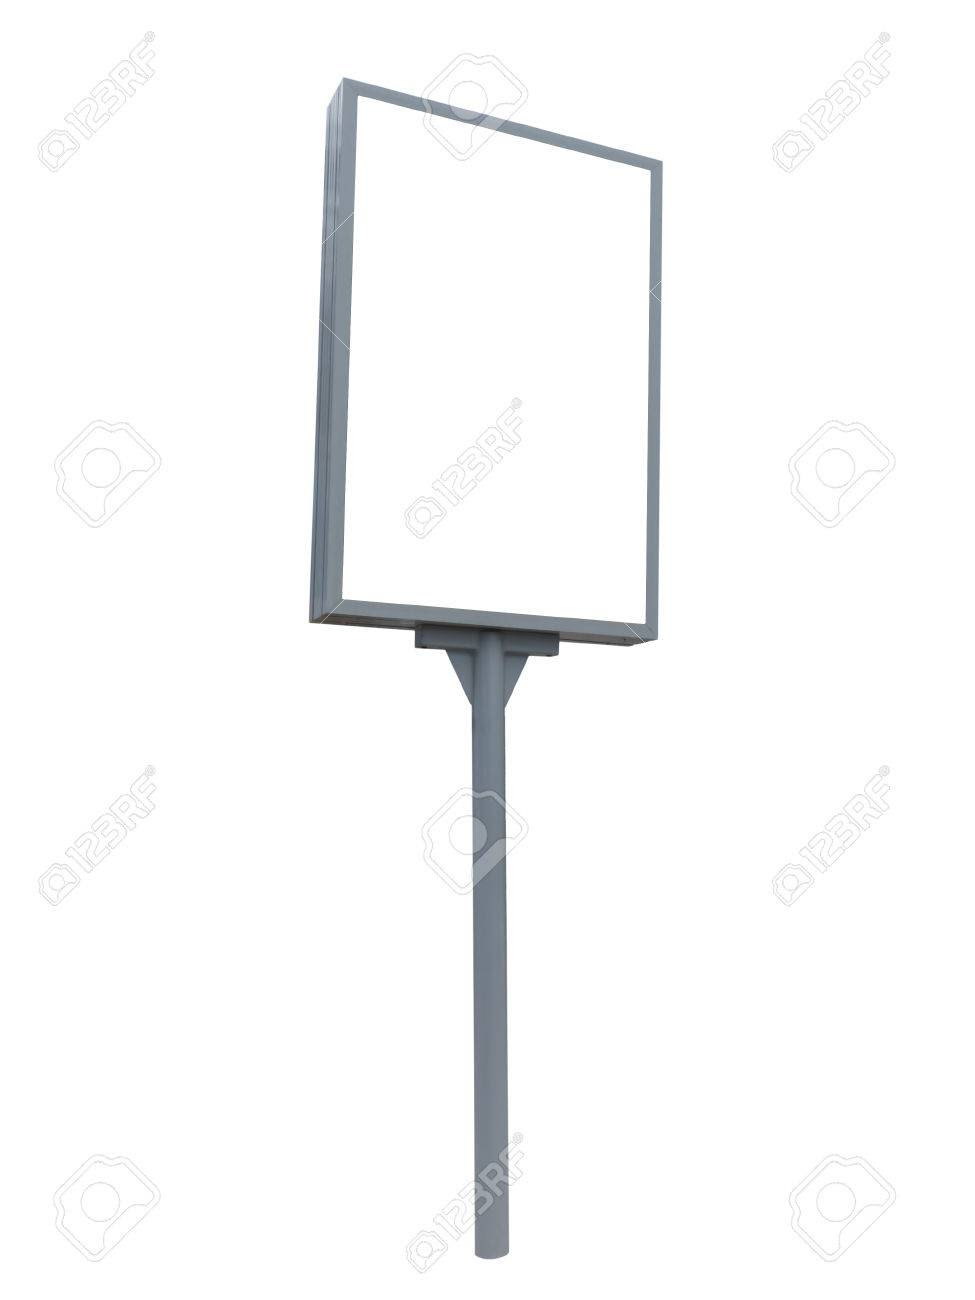 Empty Billboard Gray Transparent Background Stock Photo, Picture ...